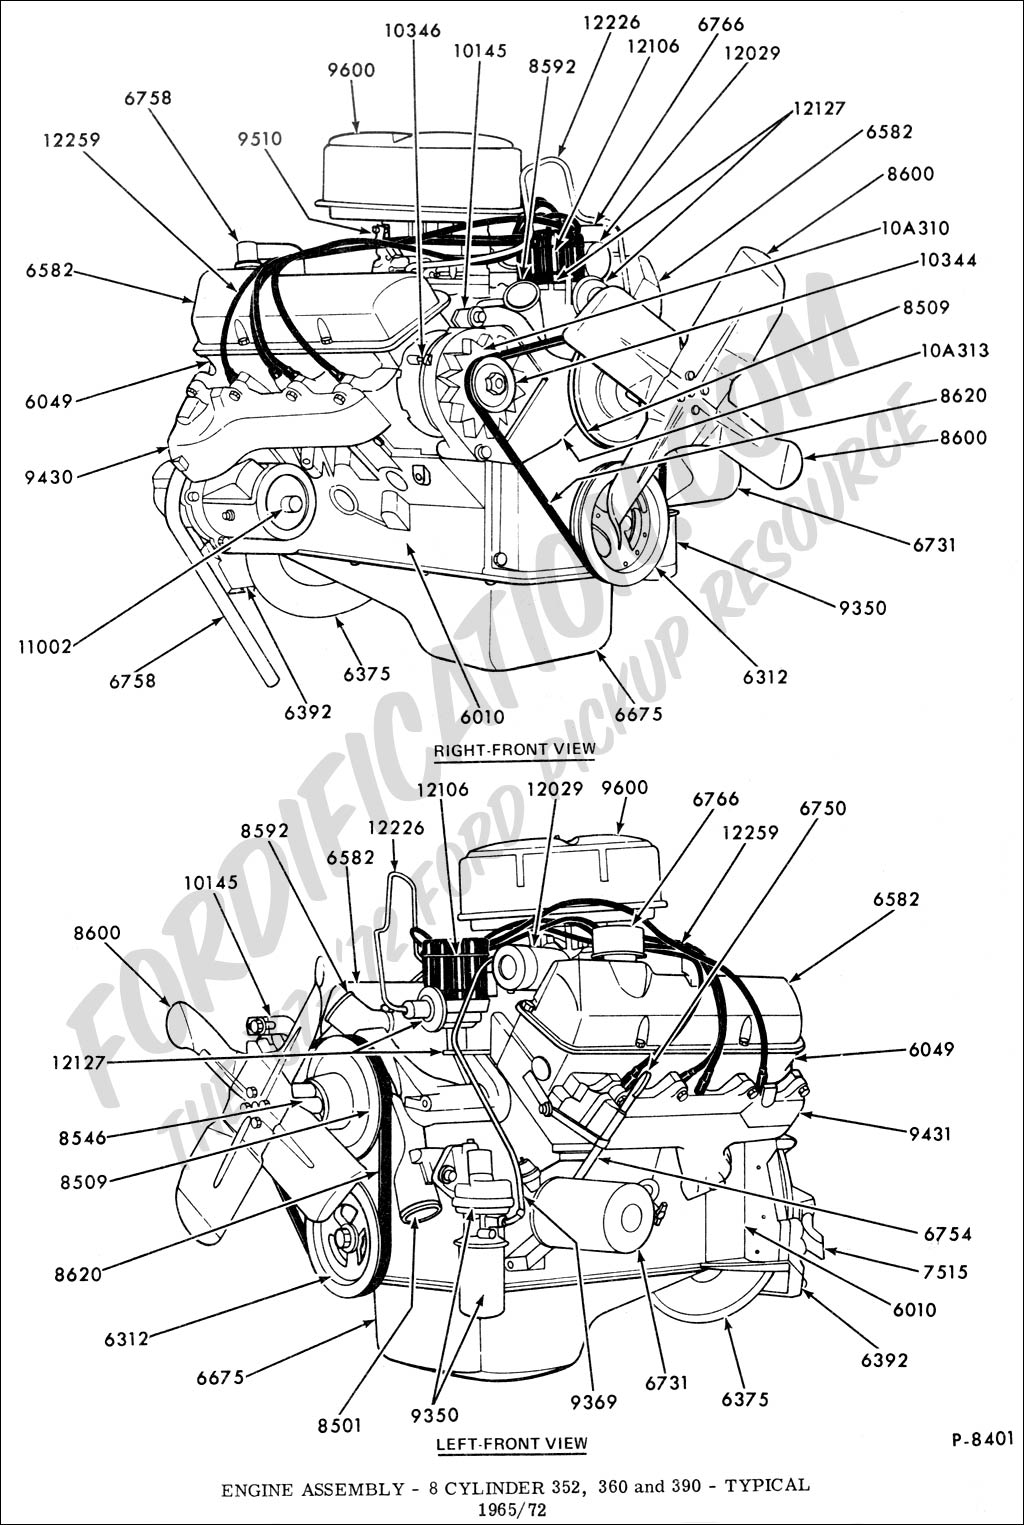 Ford 302 Engine Exploded View